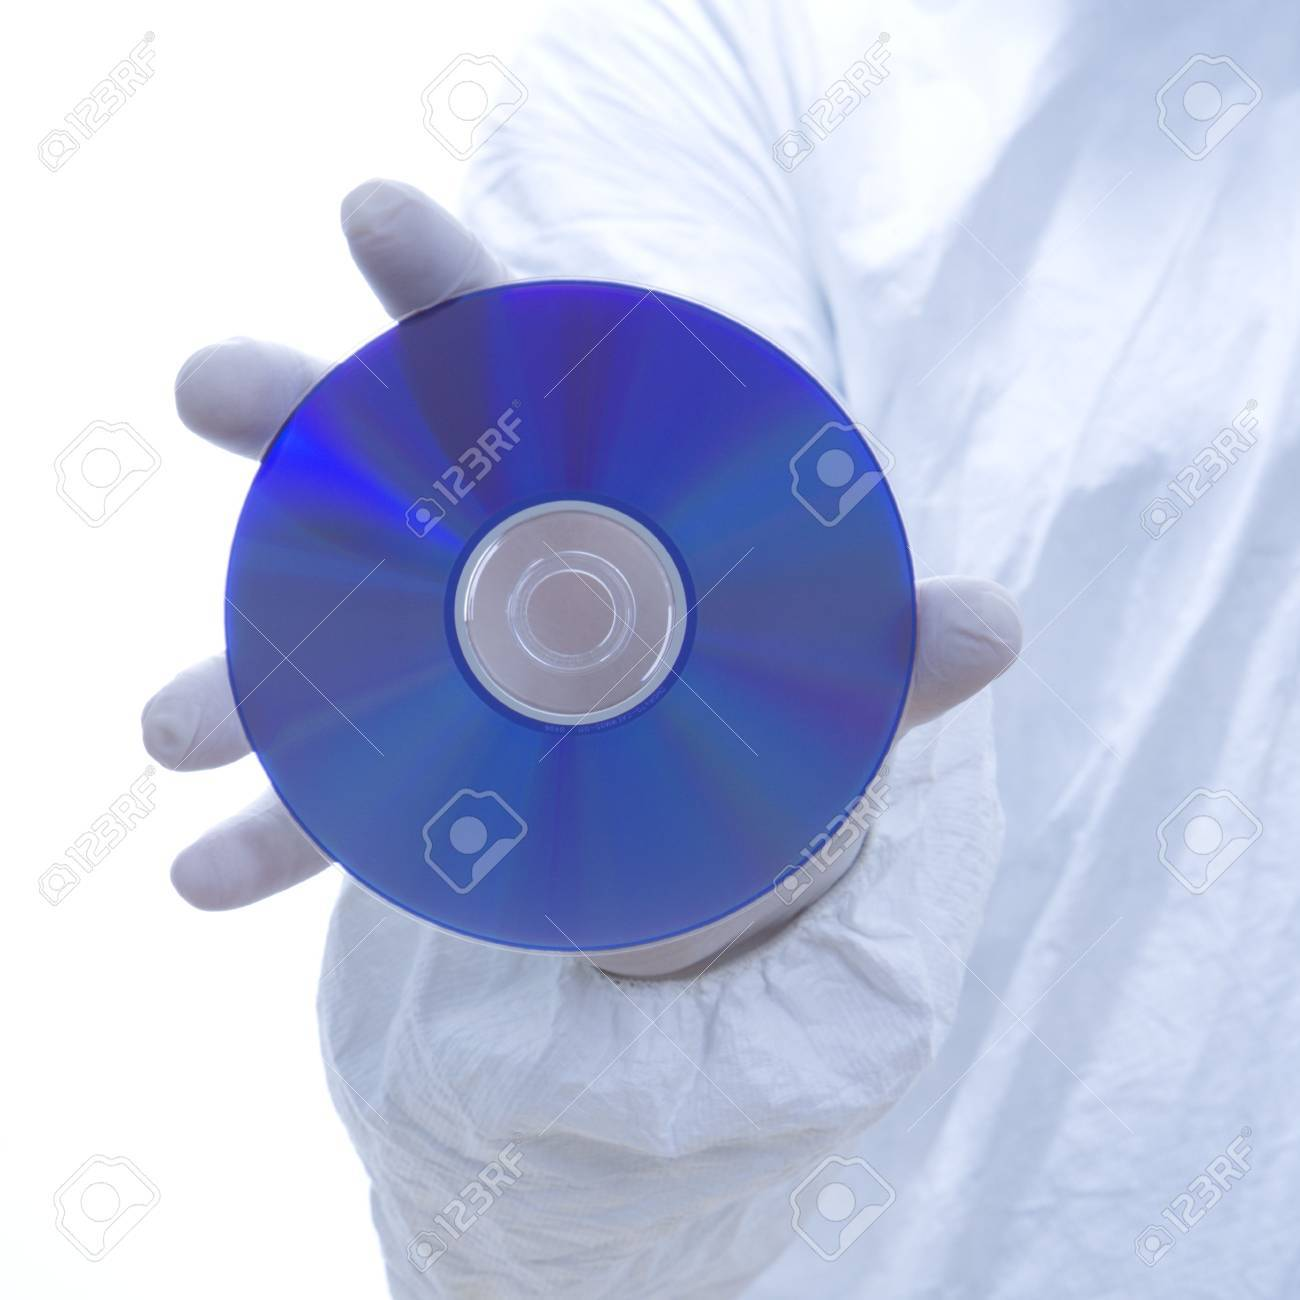 Close-up of man in biohazard suit and latex gloves holding compact disc. Stock Photo - 1906307